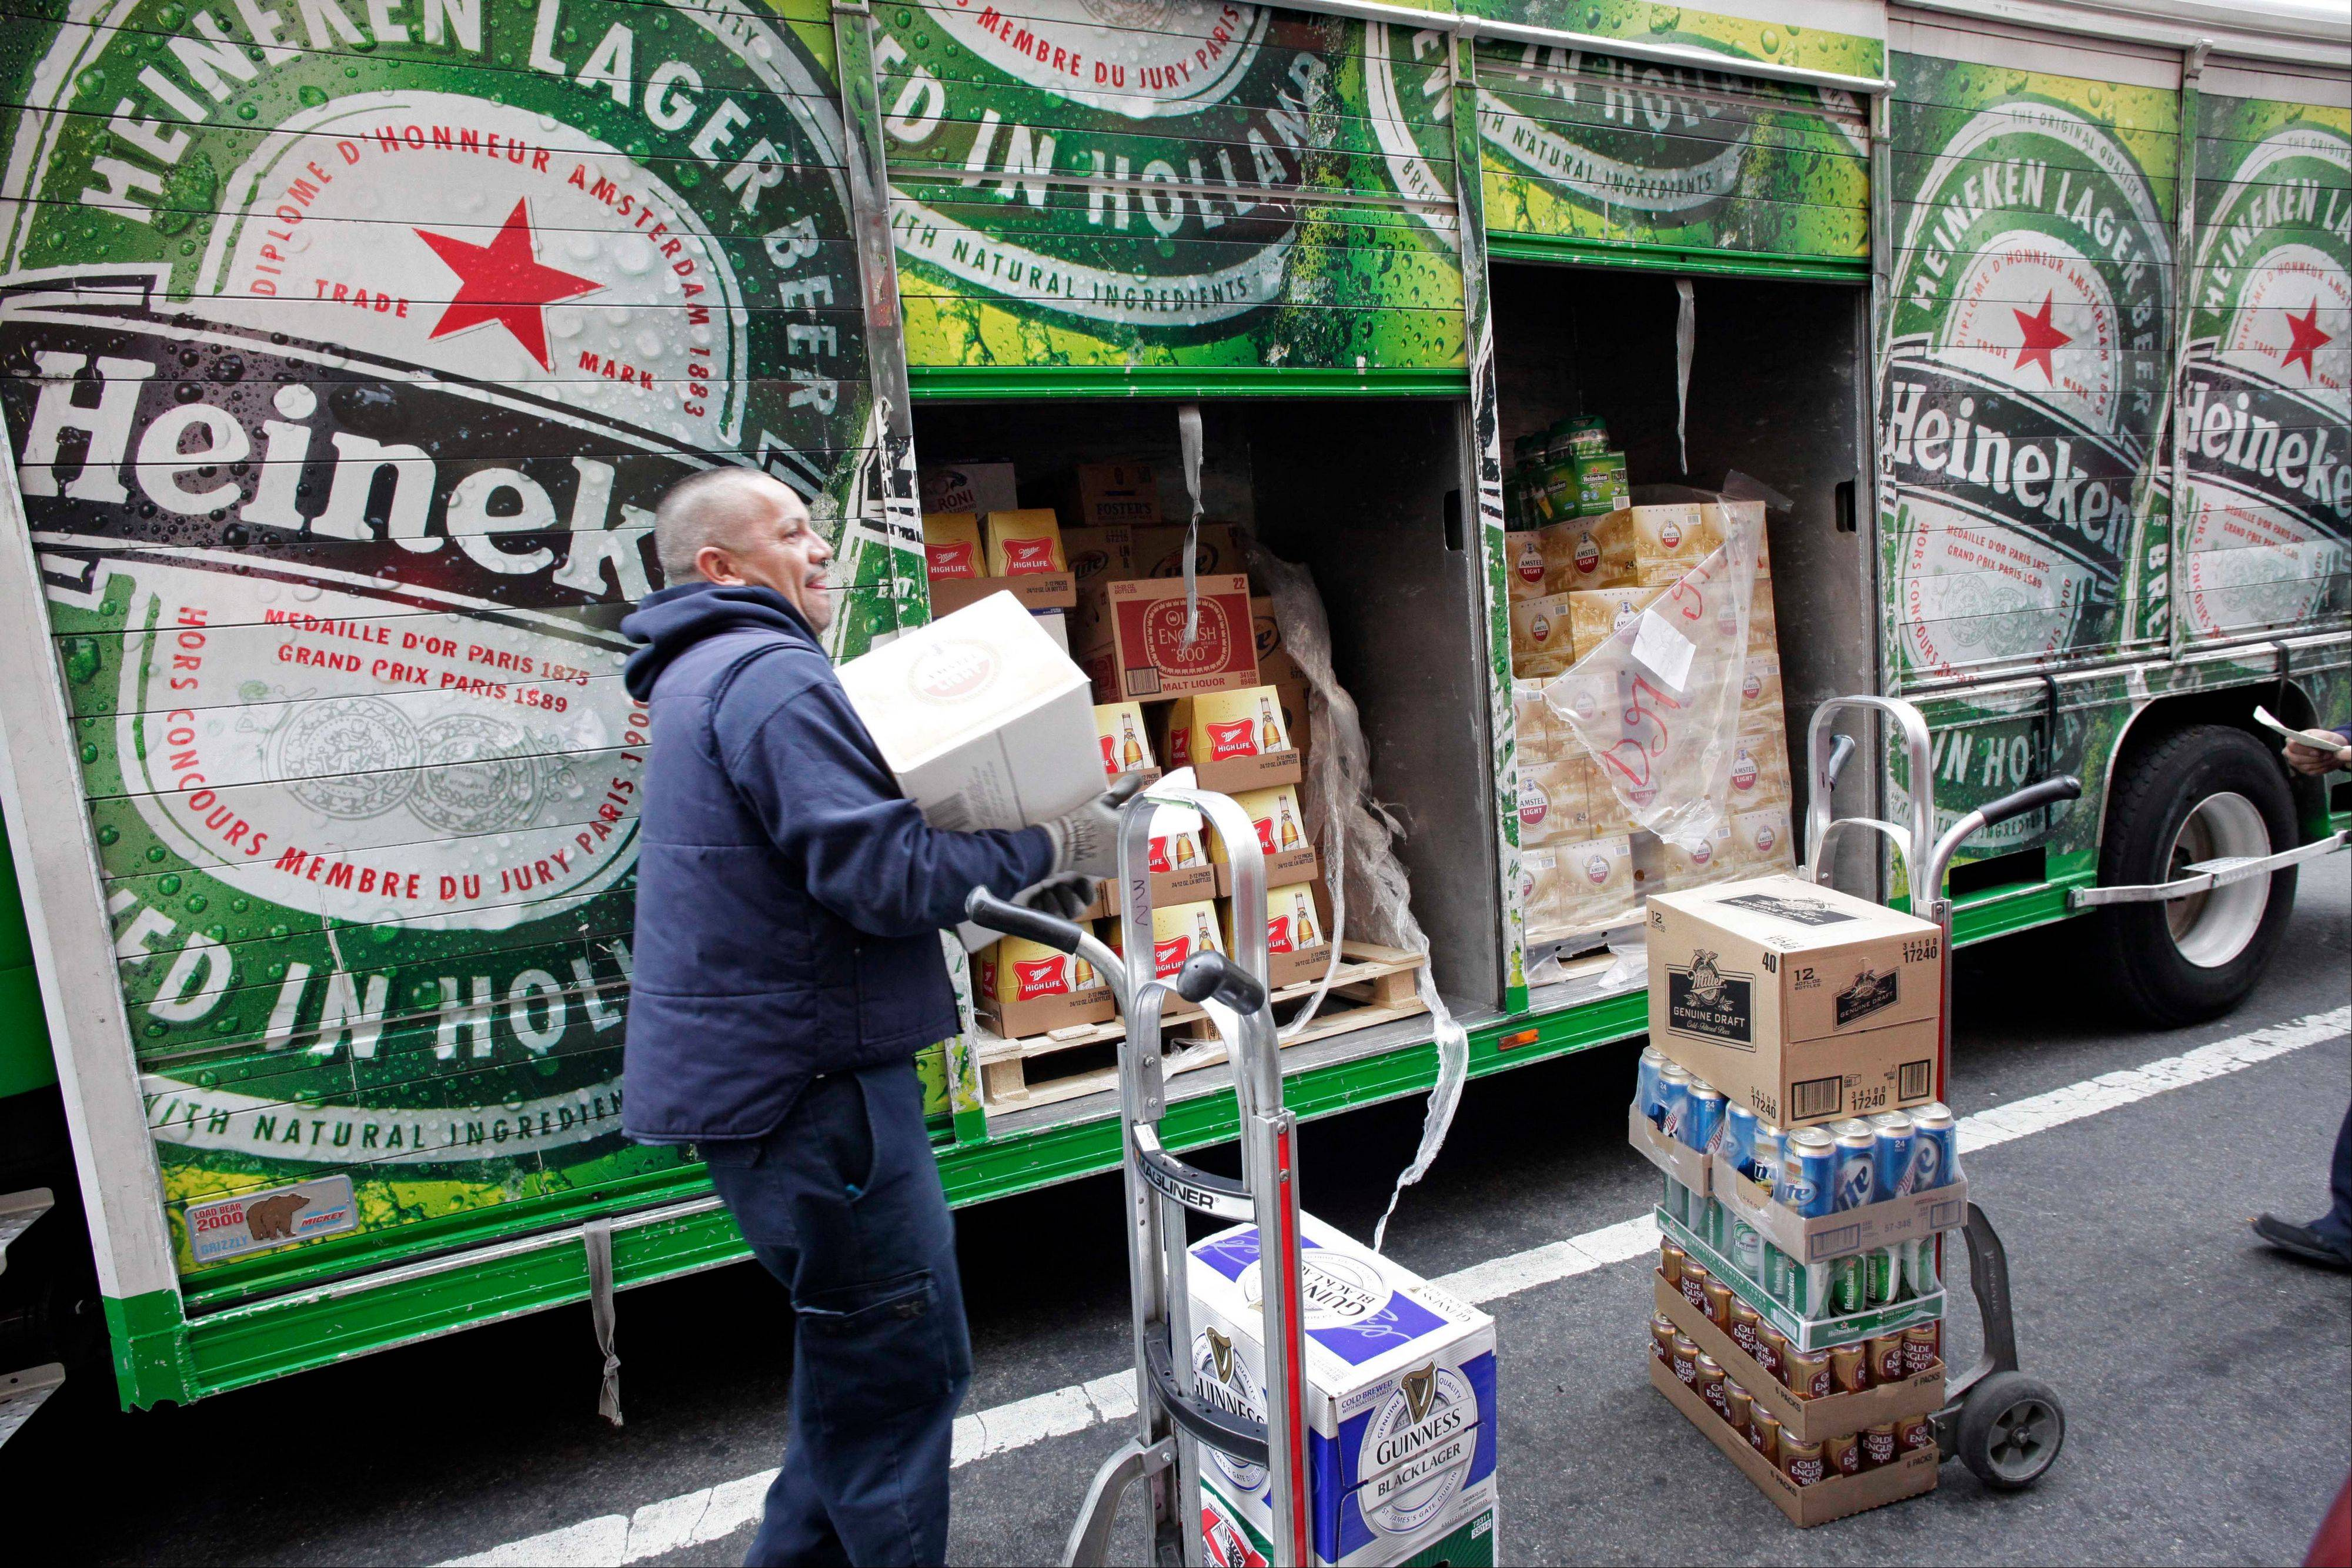 A truck driver delivers Heineken beer and other drinks in New York. Heineken, a Dutch brewing company based in Amsterdam, said Fridayit is offering $4.1 billion to buy out its partner in the Singapore-based maker of Tiger beer.